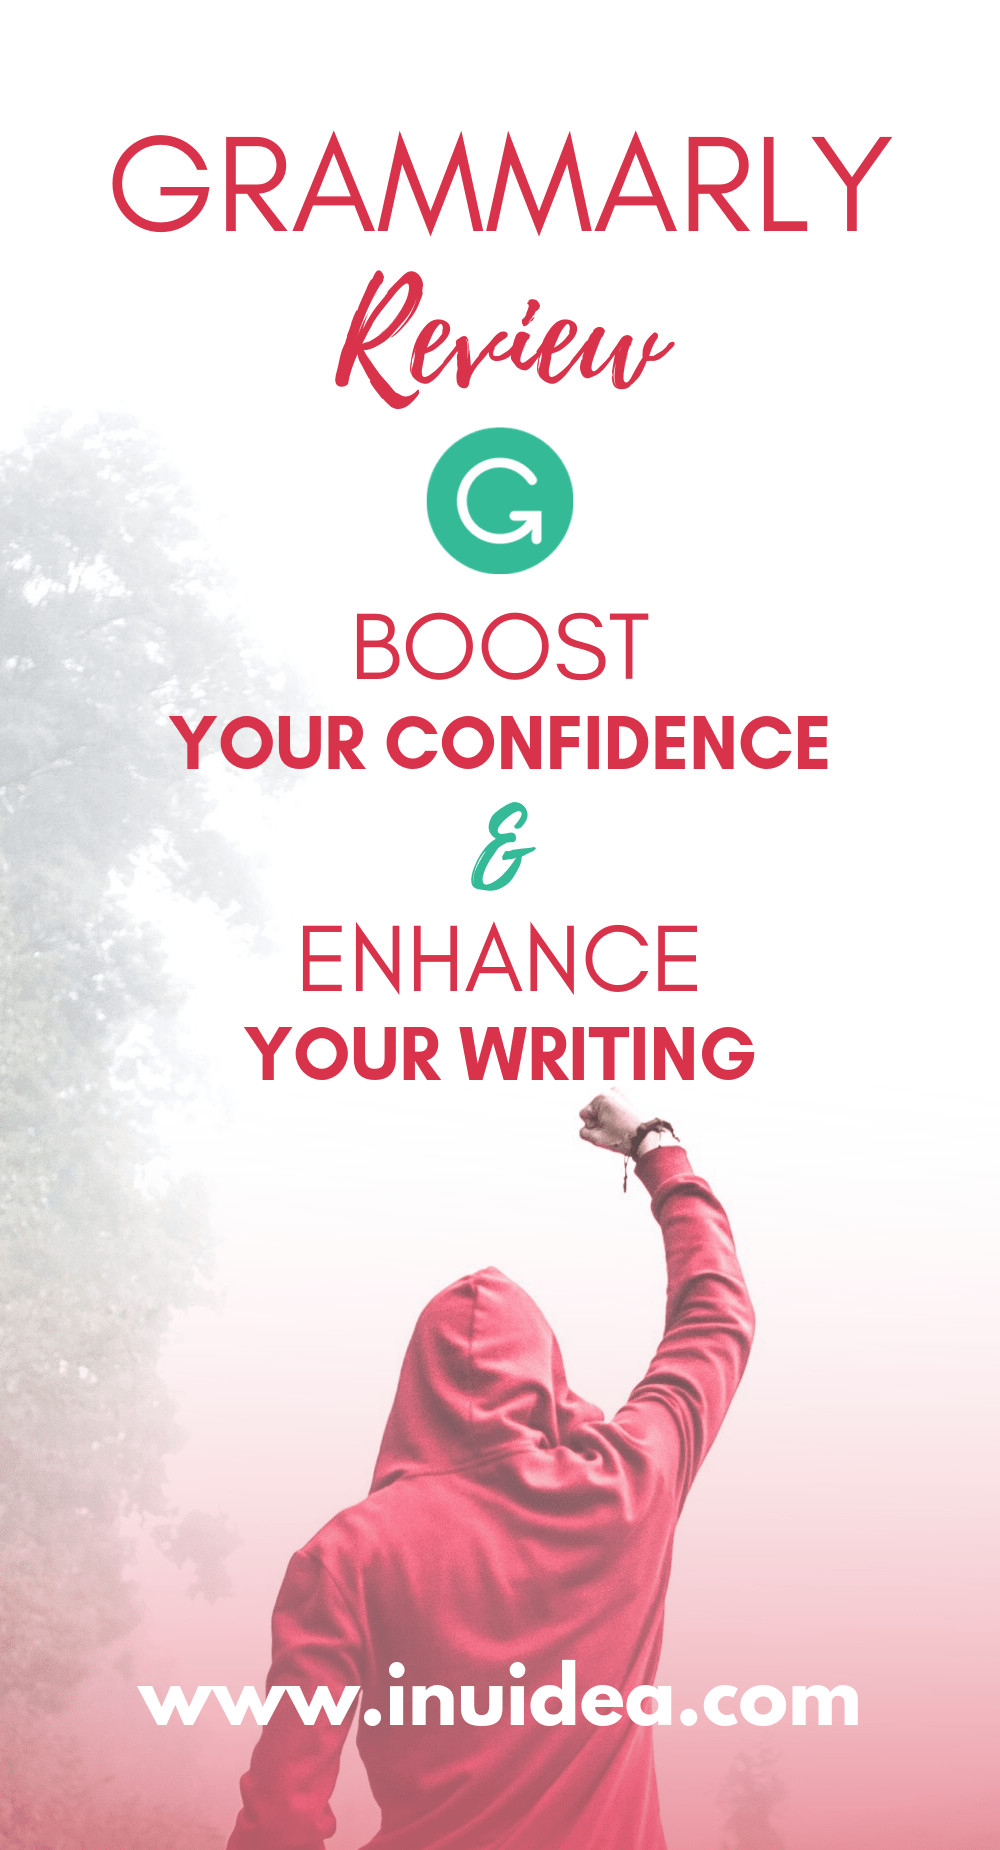 Grammarly Pages